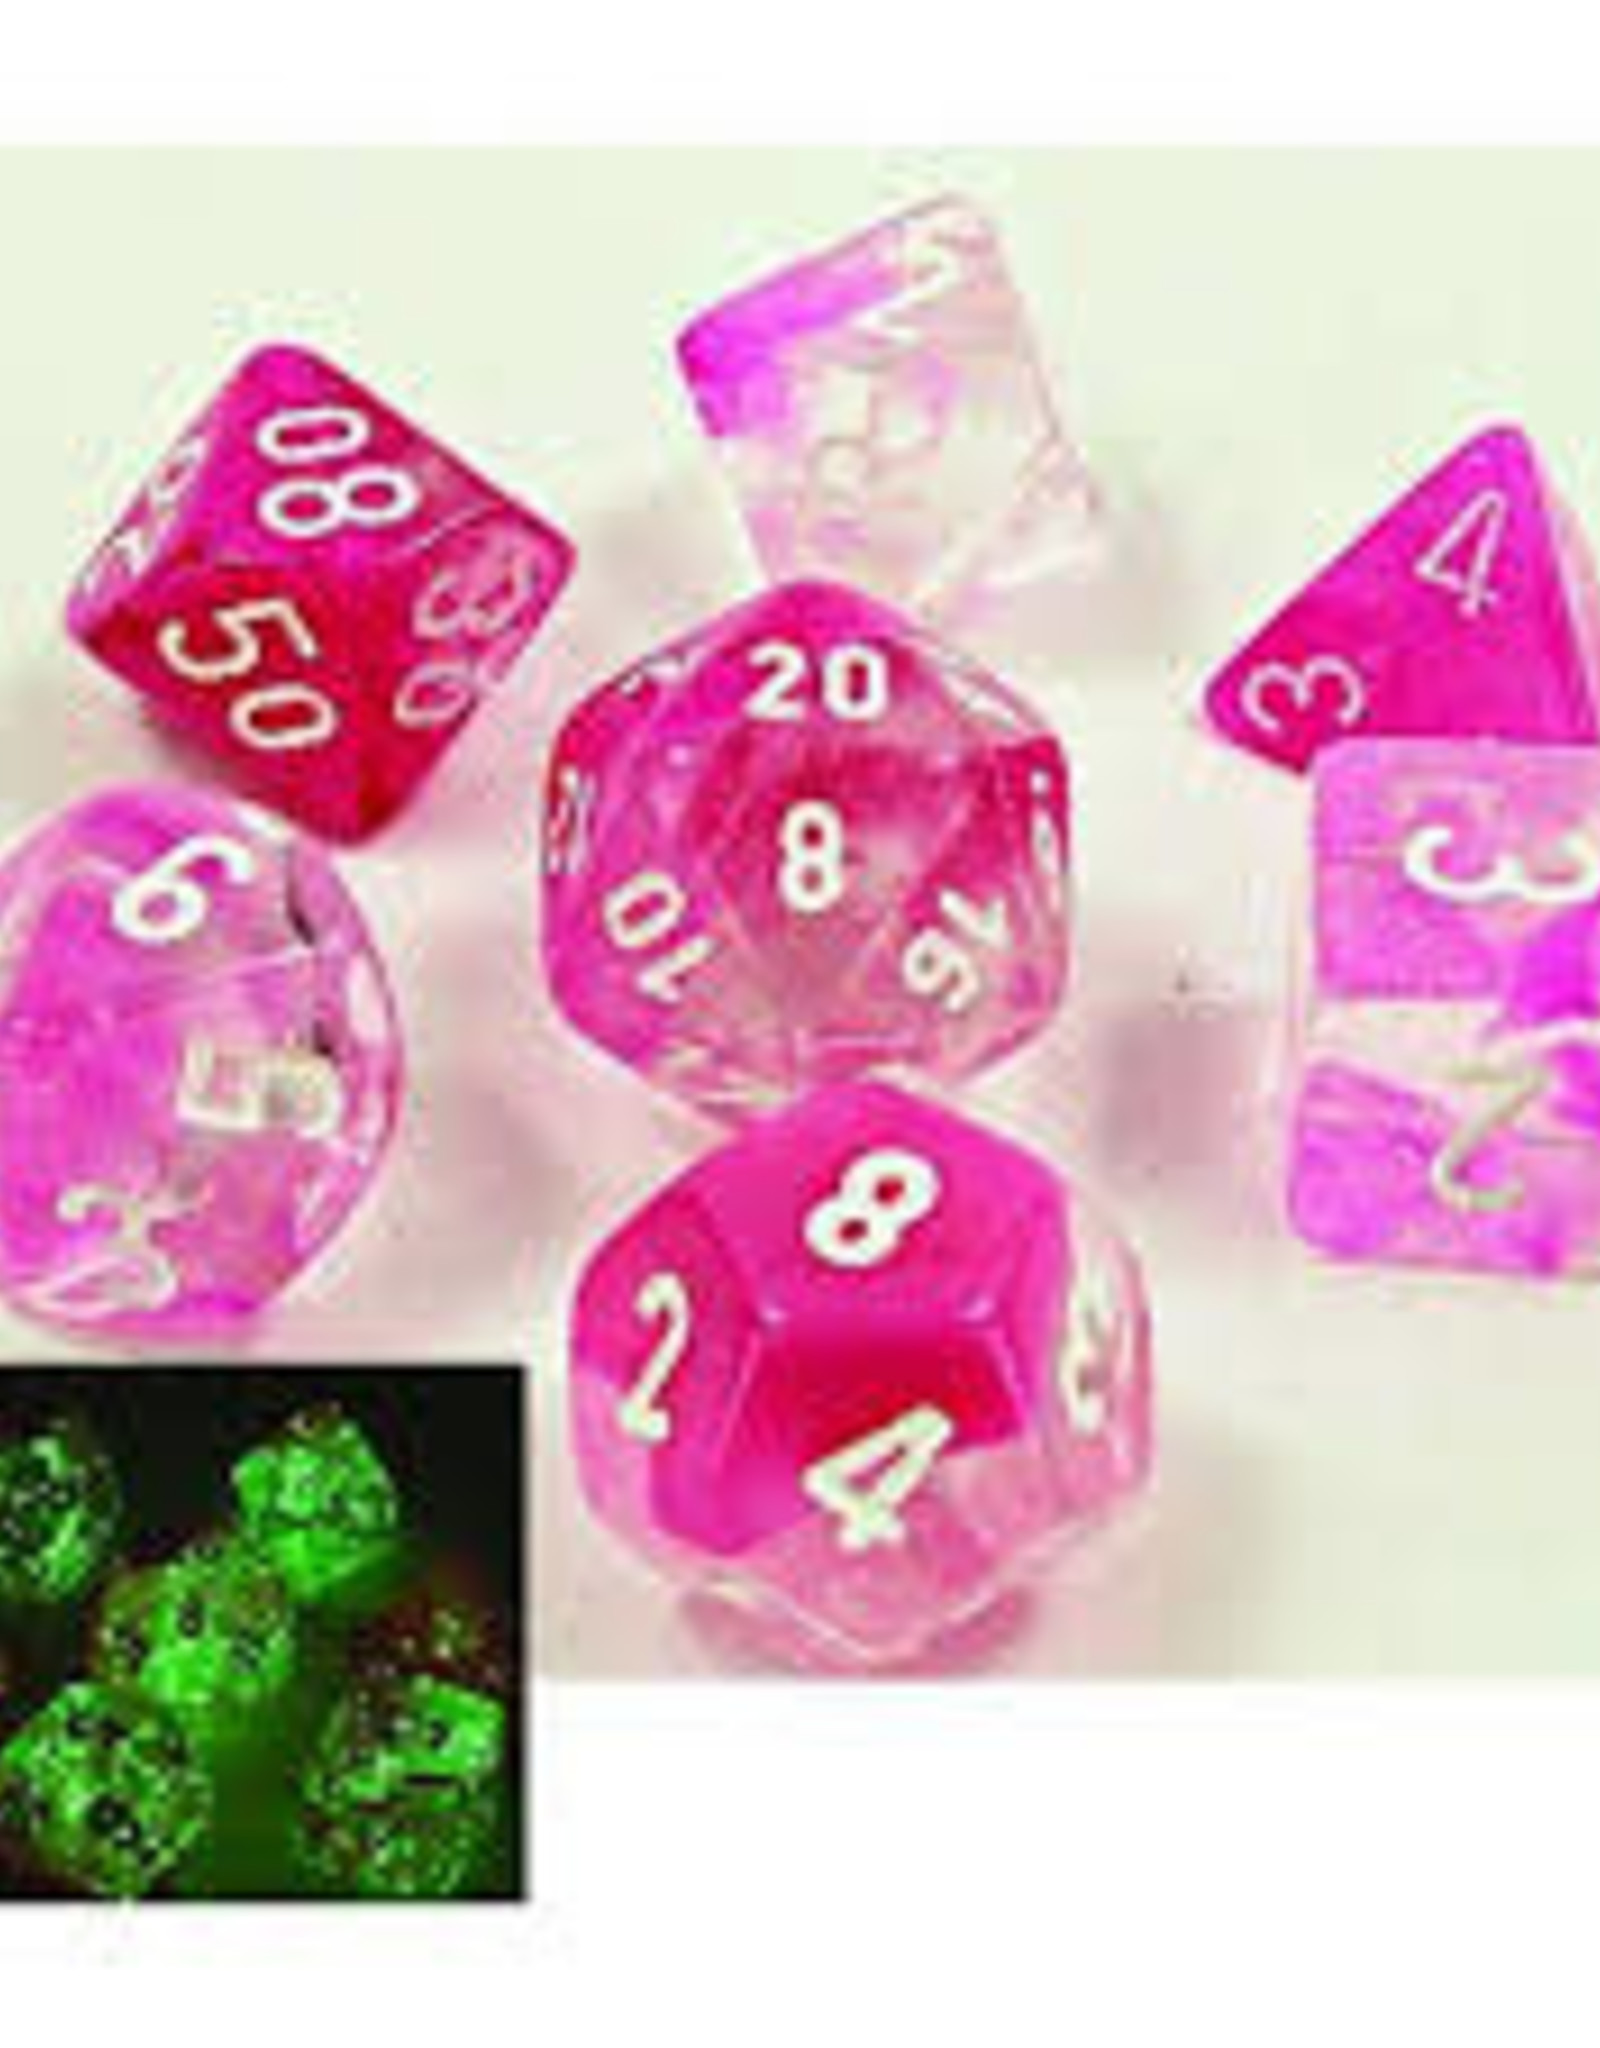 Chessex Lab Dice Luminary Gemini Poly 7 set: Pink w/ White